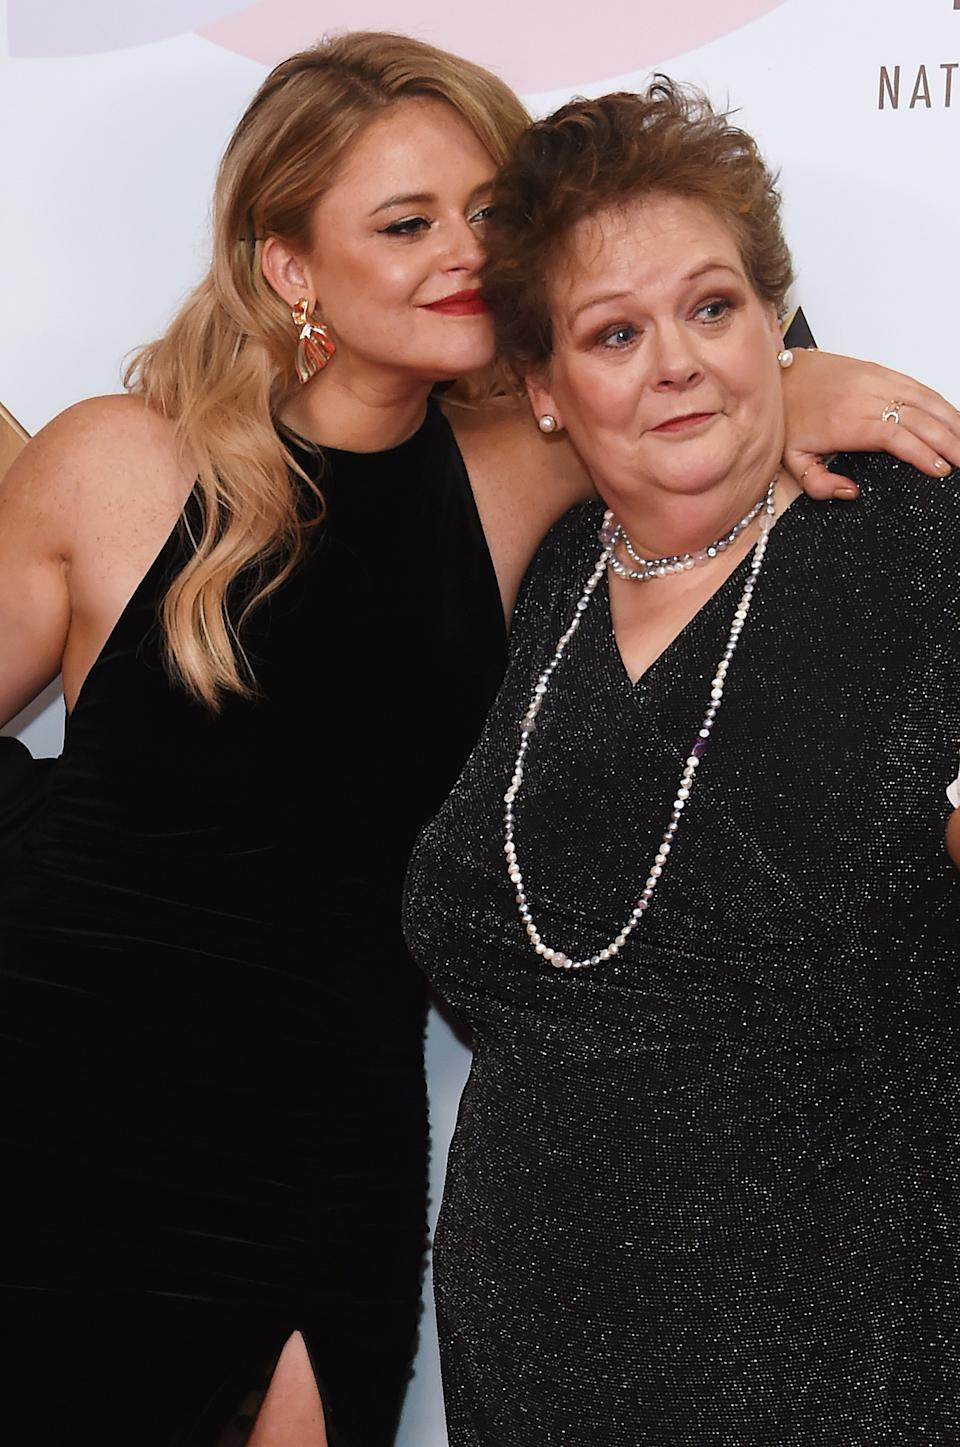 LONDON, ENGLAND - JANUARY 22:  Emily Atack (L) and Anne Hegerty, accepting the Bruce Forsyth Award for Entertainment for 'I'm A Celebrity...Get Me Out Of Here!', pose in the Winners Room during the National Television Awards held at The O2 Arena on January 22, 2019 in London, England.  (Photo by David M. Benett/Dave Benett/Getty Images)